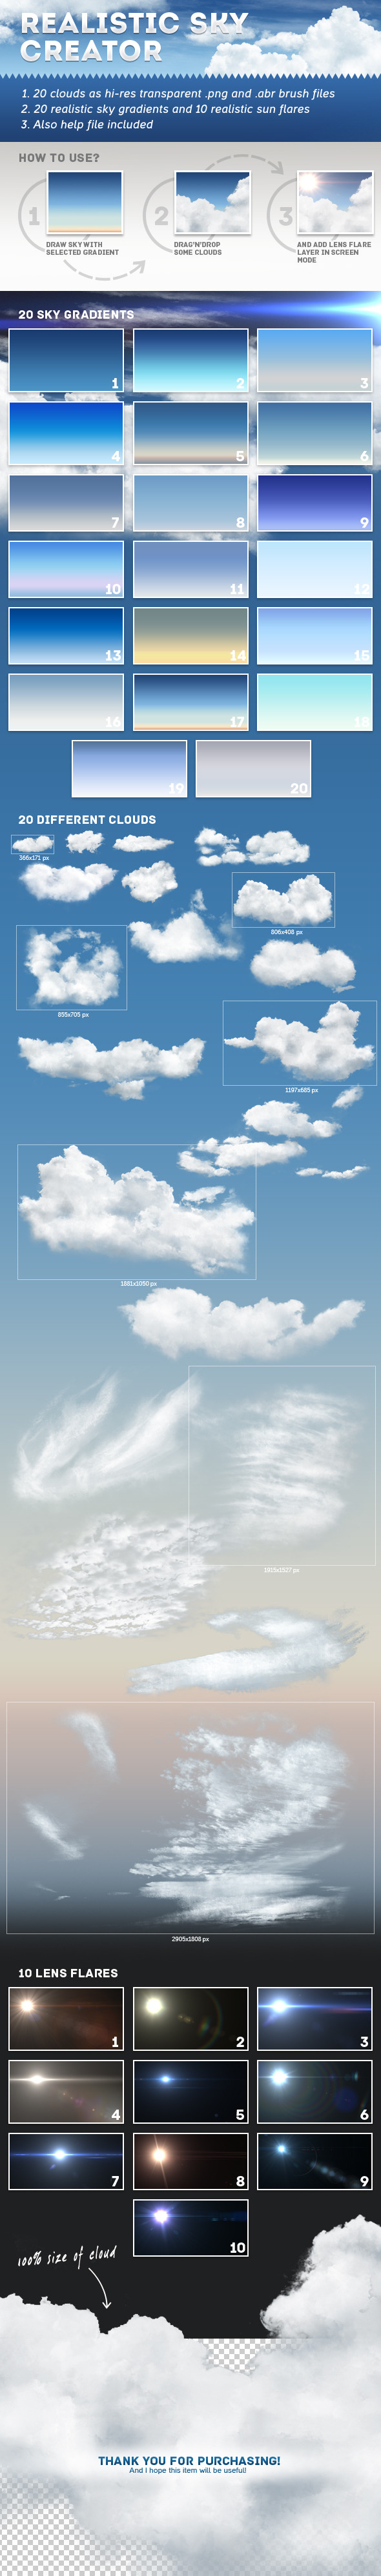 Realistic Sky Creator - Photoshop Add-ons